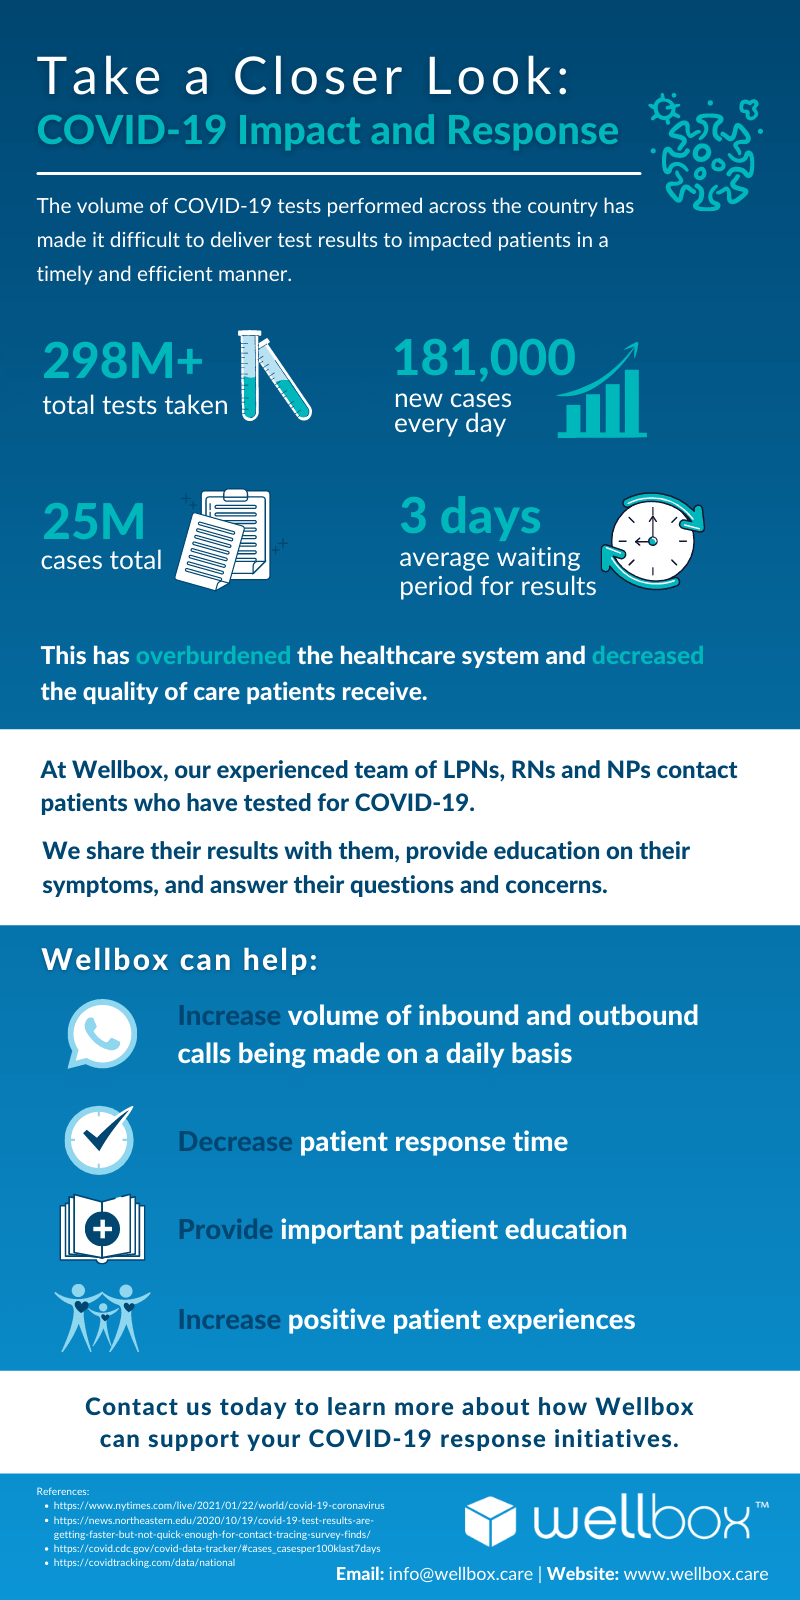 This infographic outlines the benefits of partnering with Wellbox to assist you in your COVID-19 response initiatives.